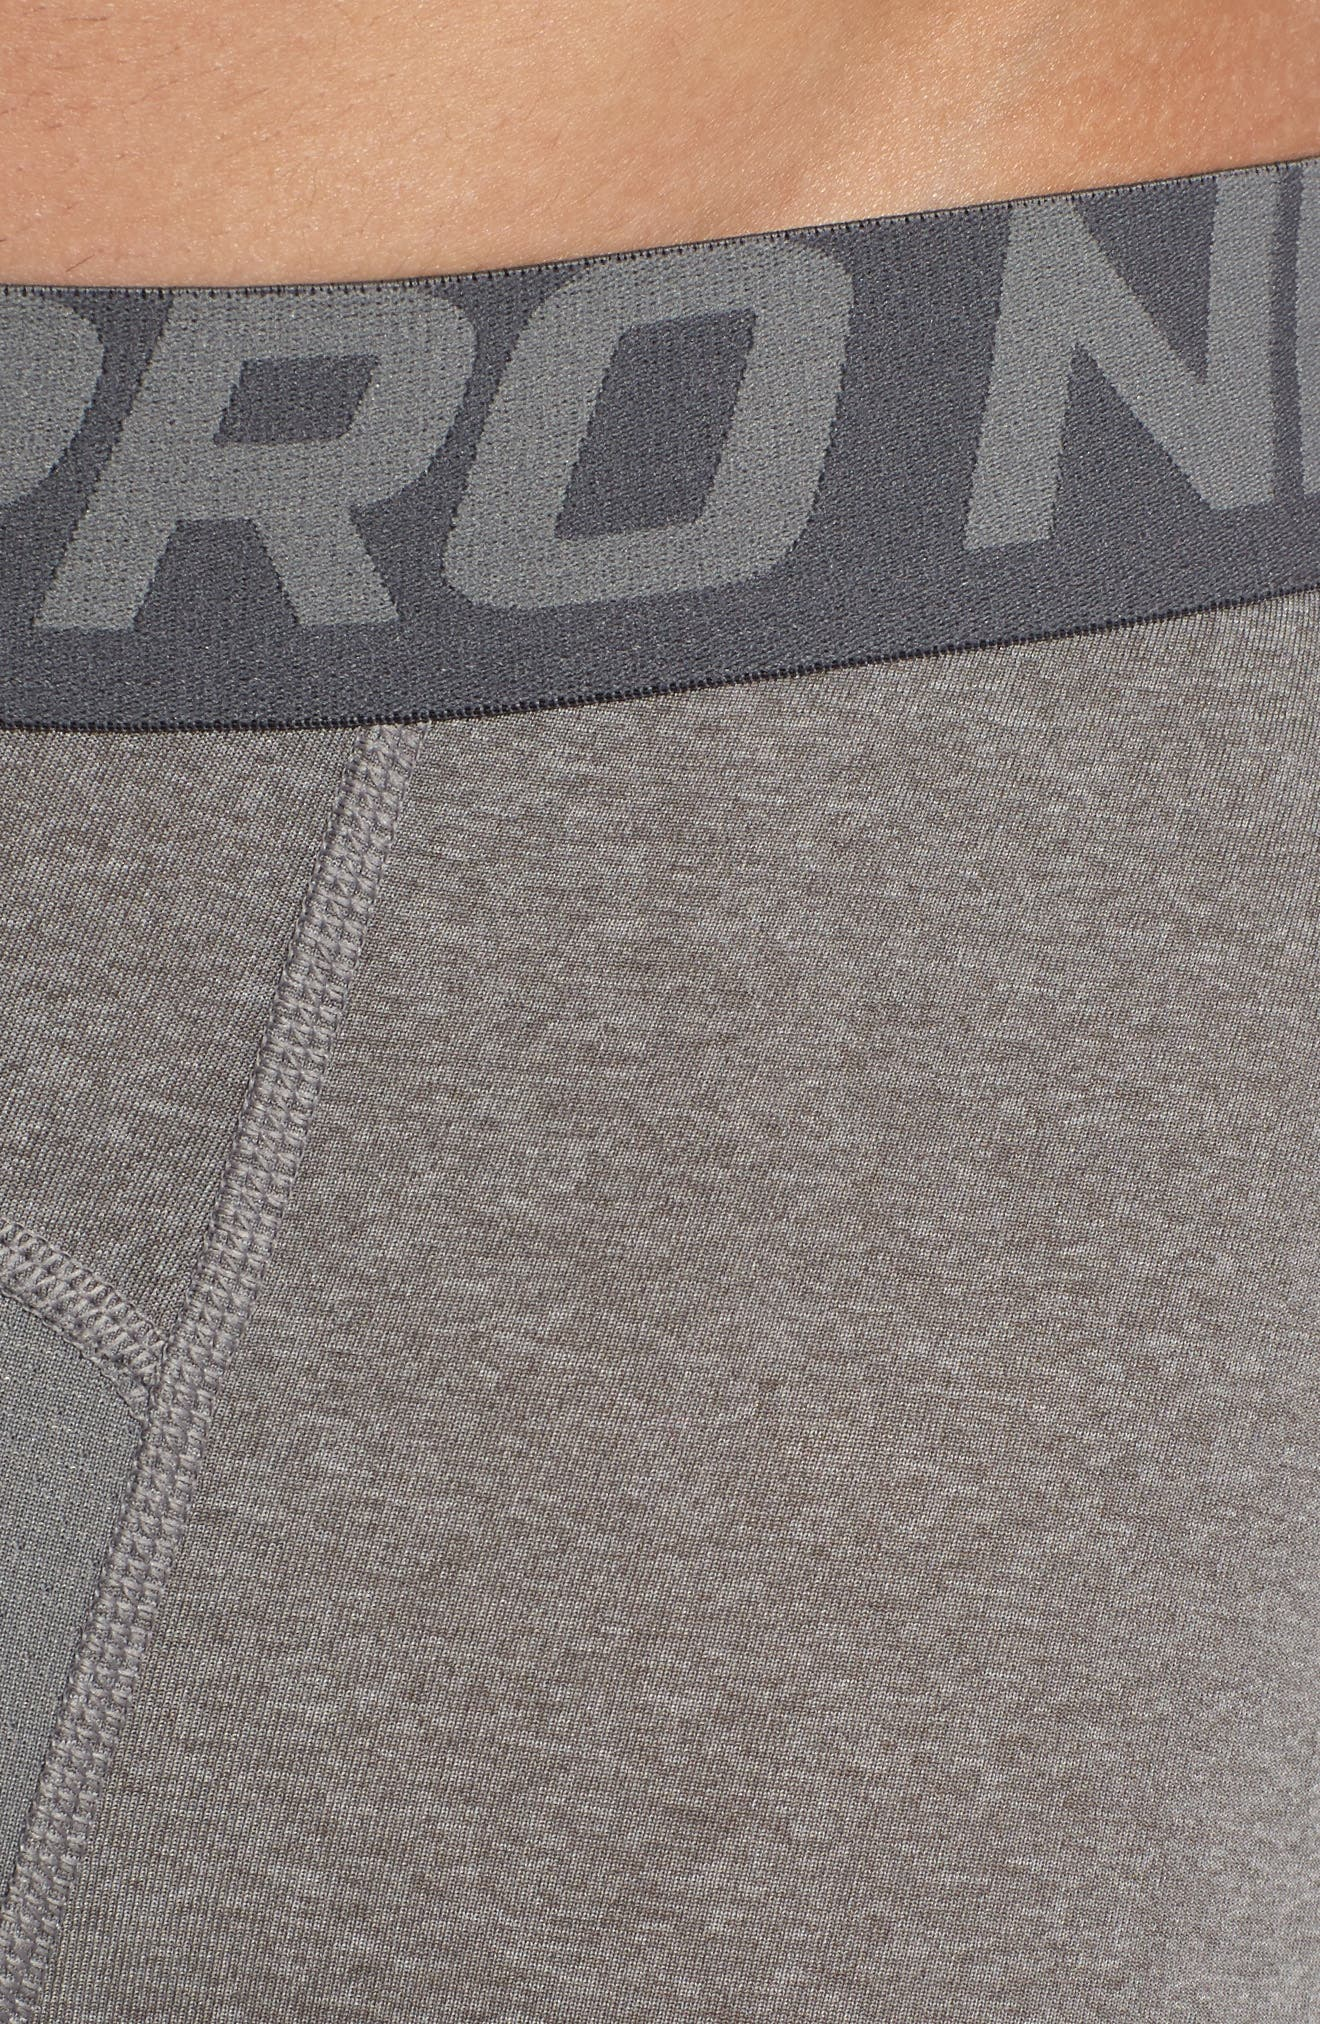 Pro Athletic Tights,                             Alternate thumbnail 4, color,                             CARBON HEATHER/ GREY/ BLACK